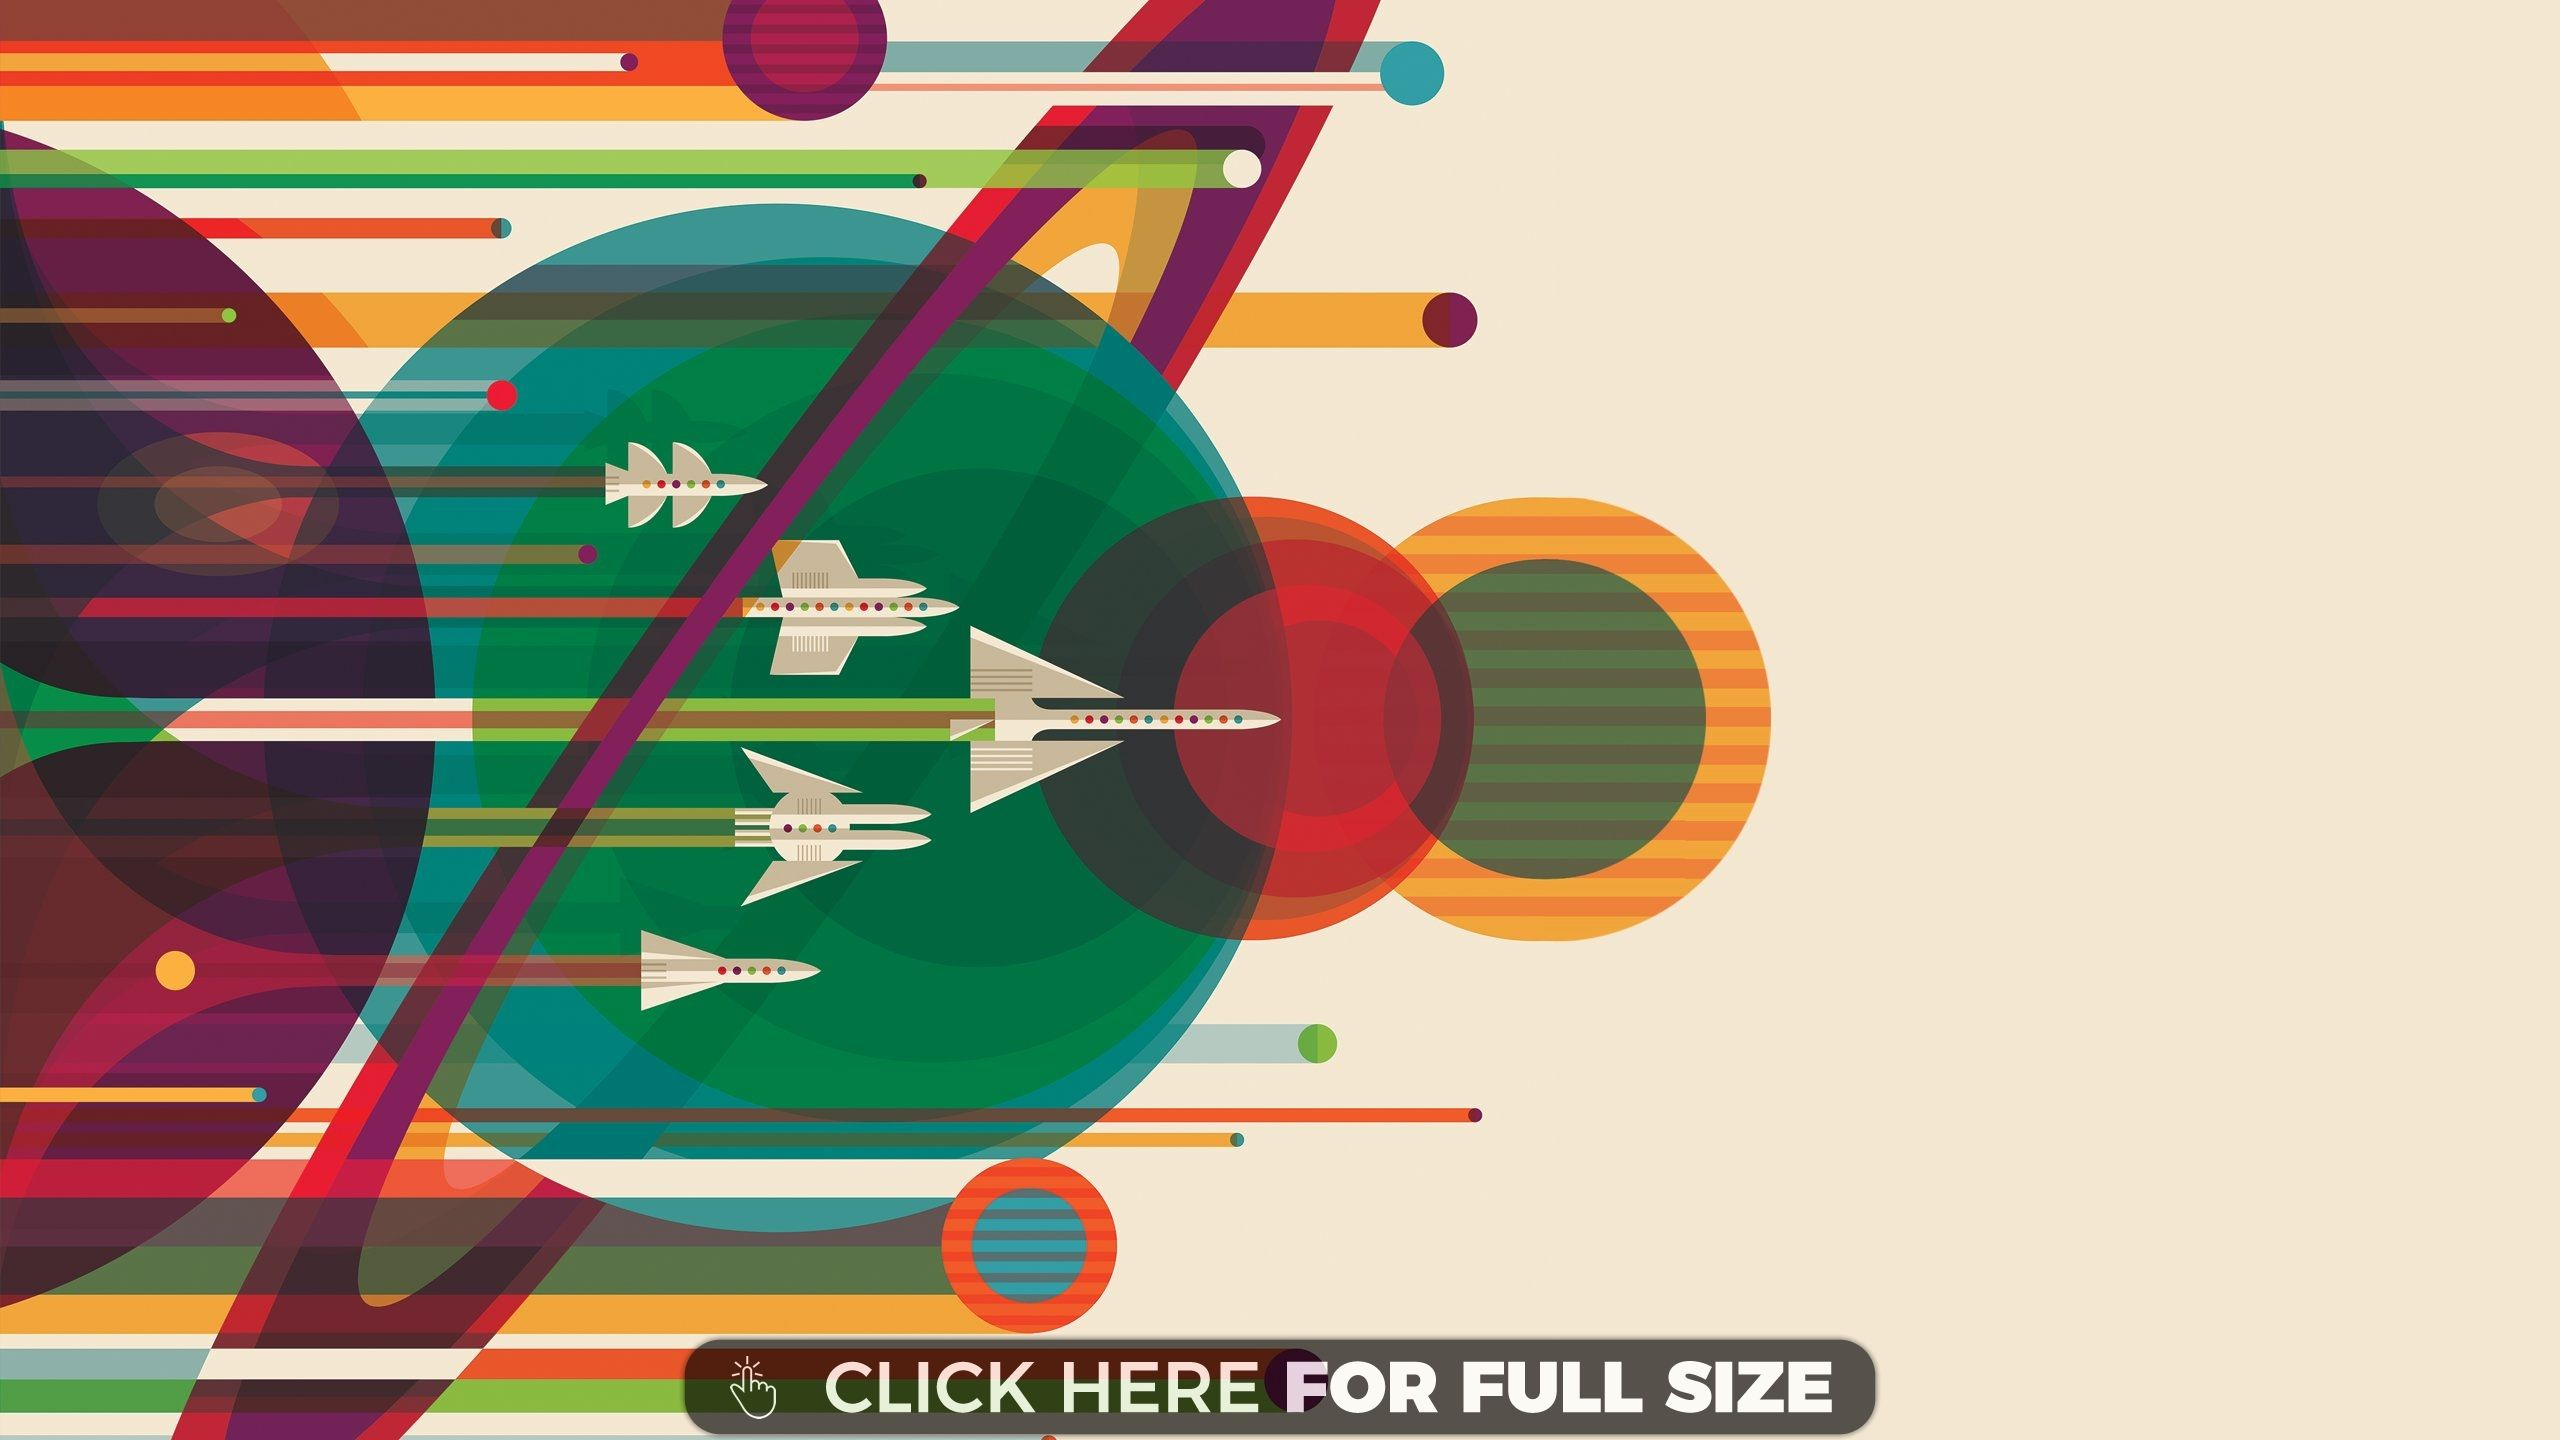 Nasa The Grand Tour Hd Wallpaper Android Wallpaper Android Wallpaper Black Android Wallpaper Space Newer devices, running android 7.1 and up, can follow the steps described on this. nasa the grand tour hd wallpaper